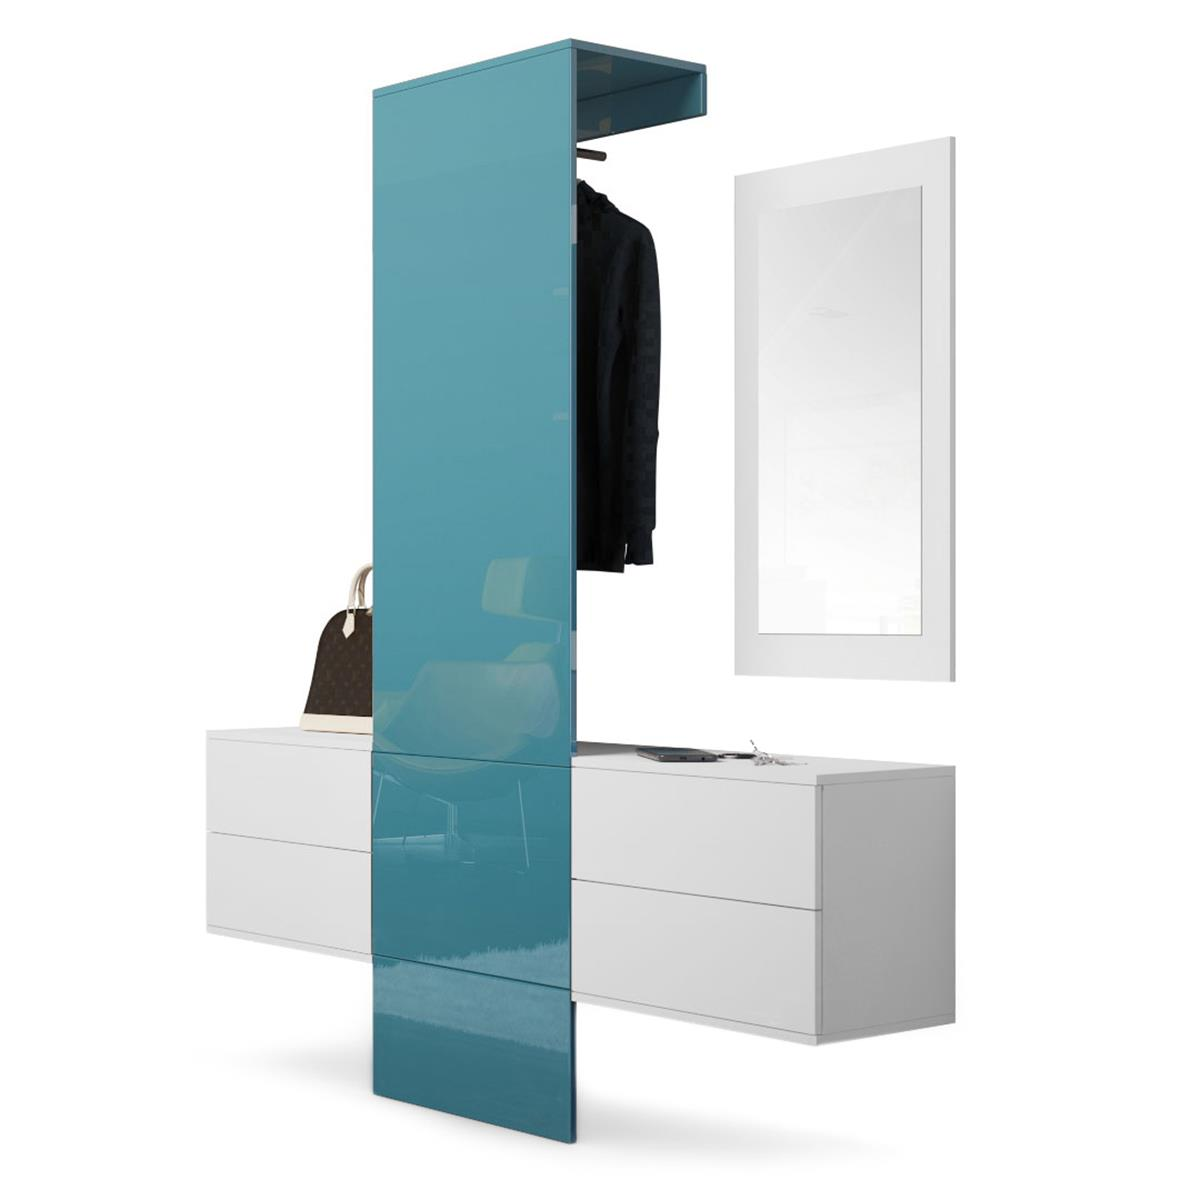 Garderobe carlton set 3 inkl spiegel variable module for Garderobe carlton